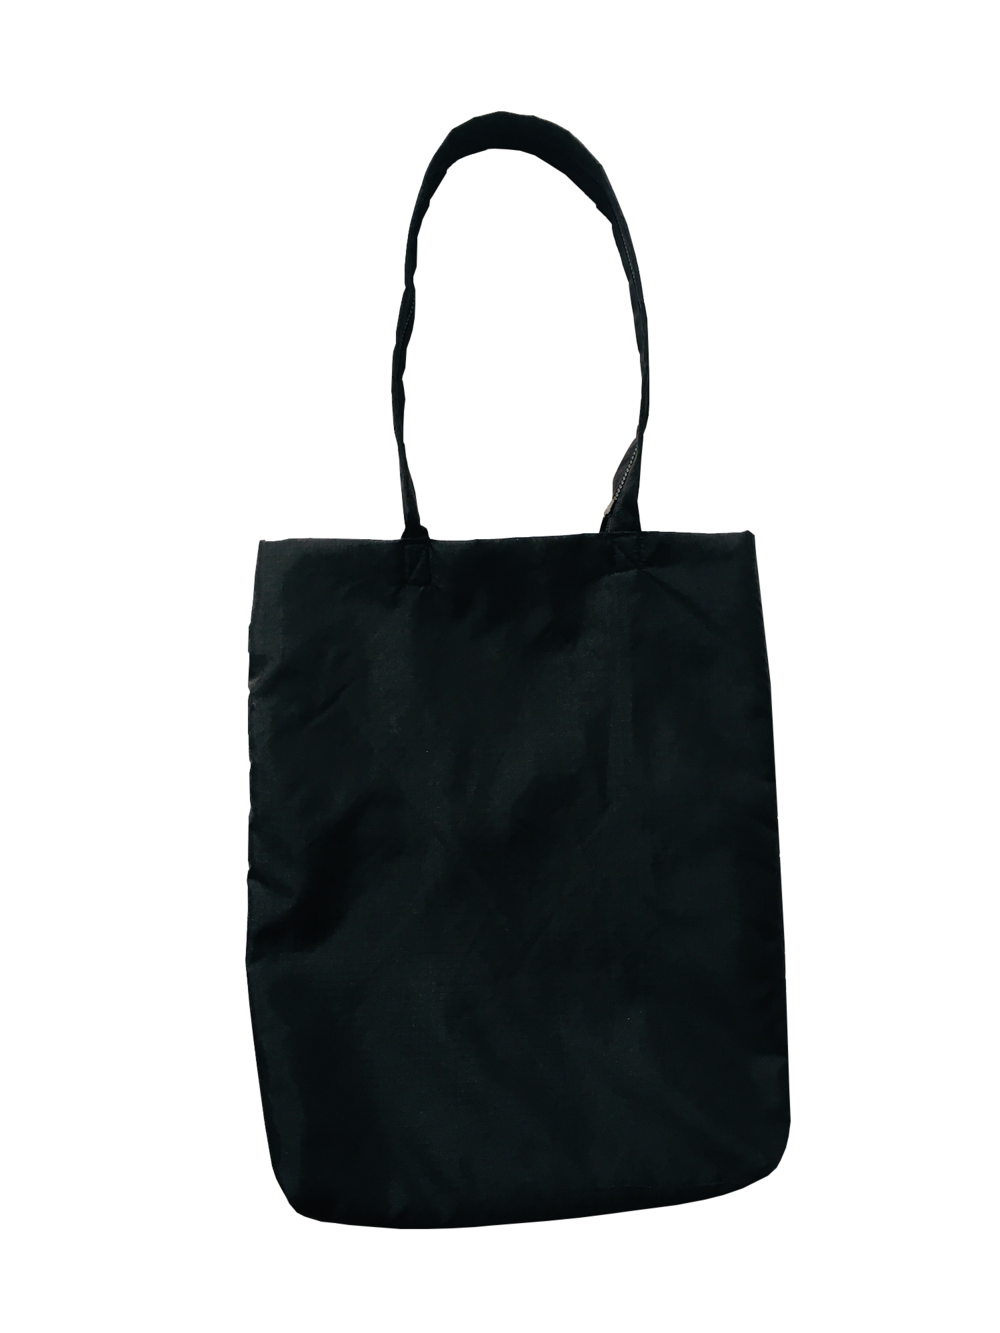 ToteBagSS.png